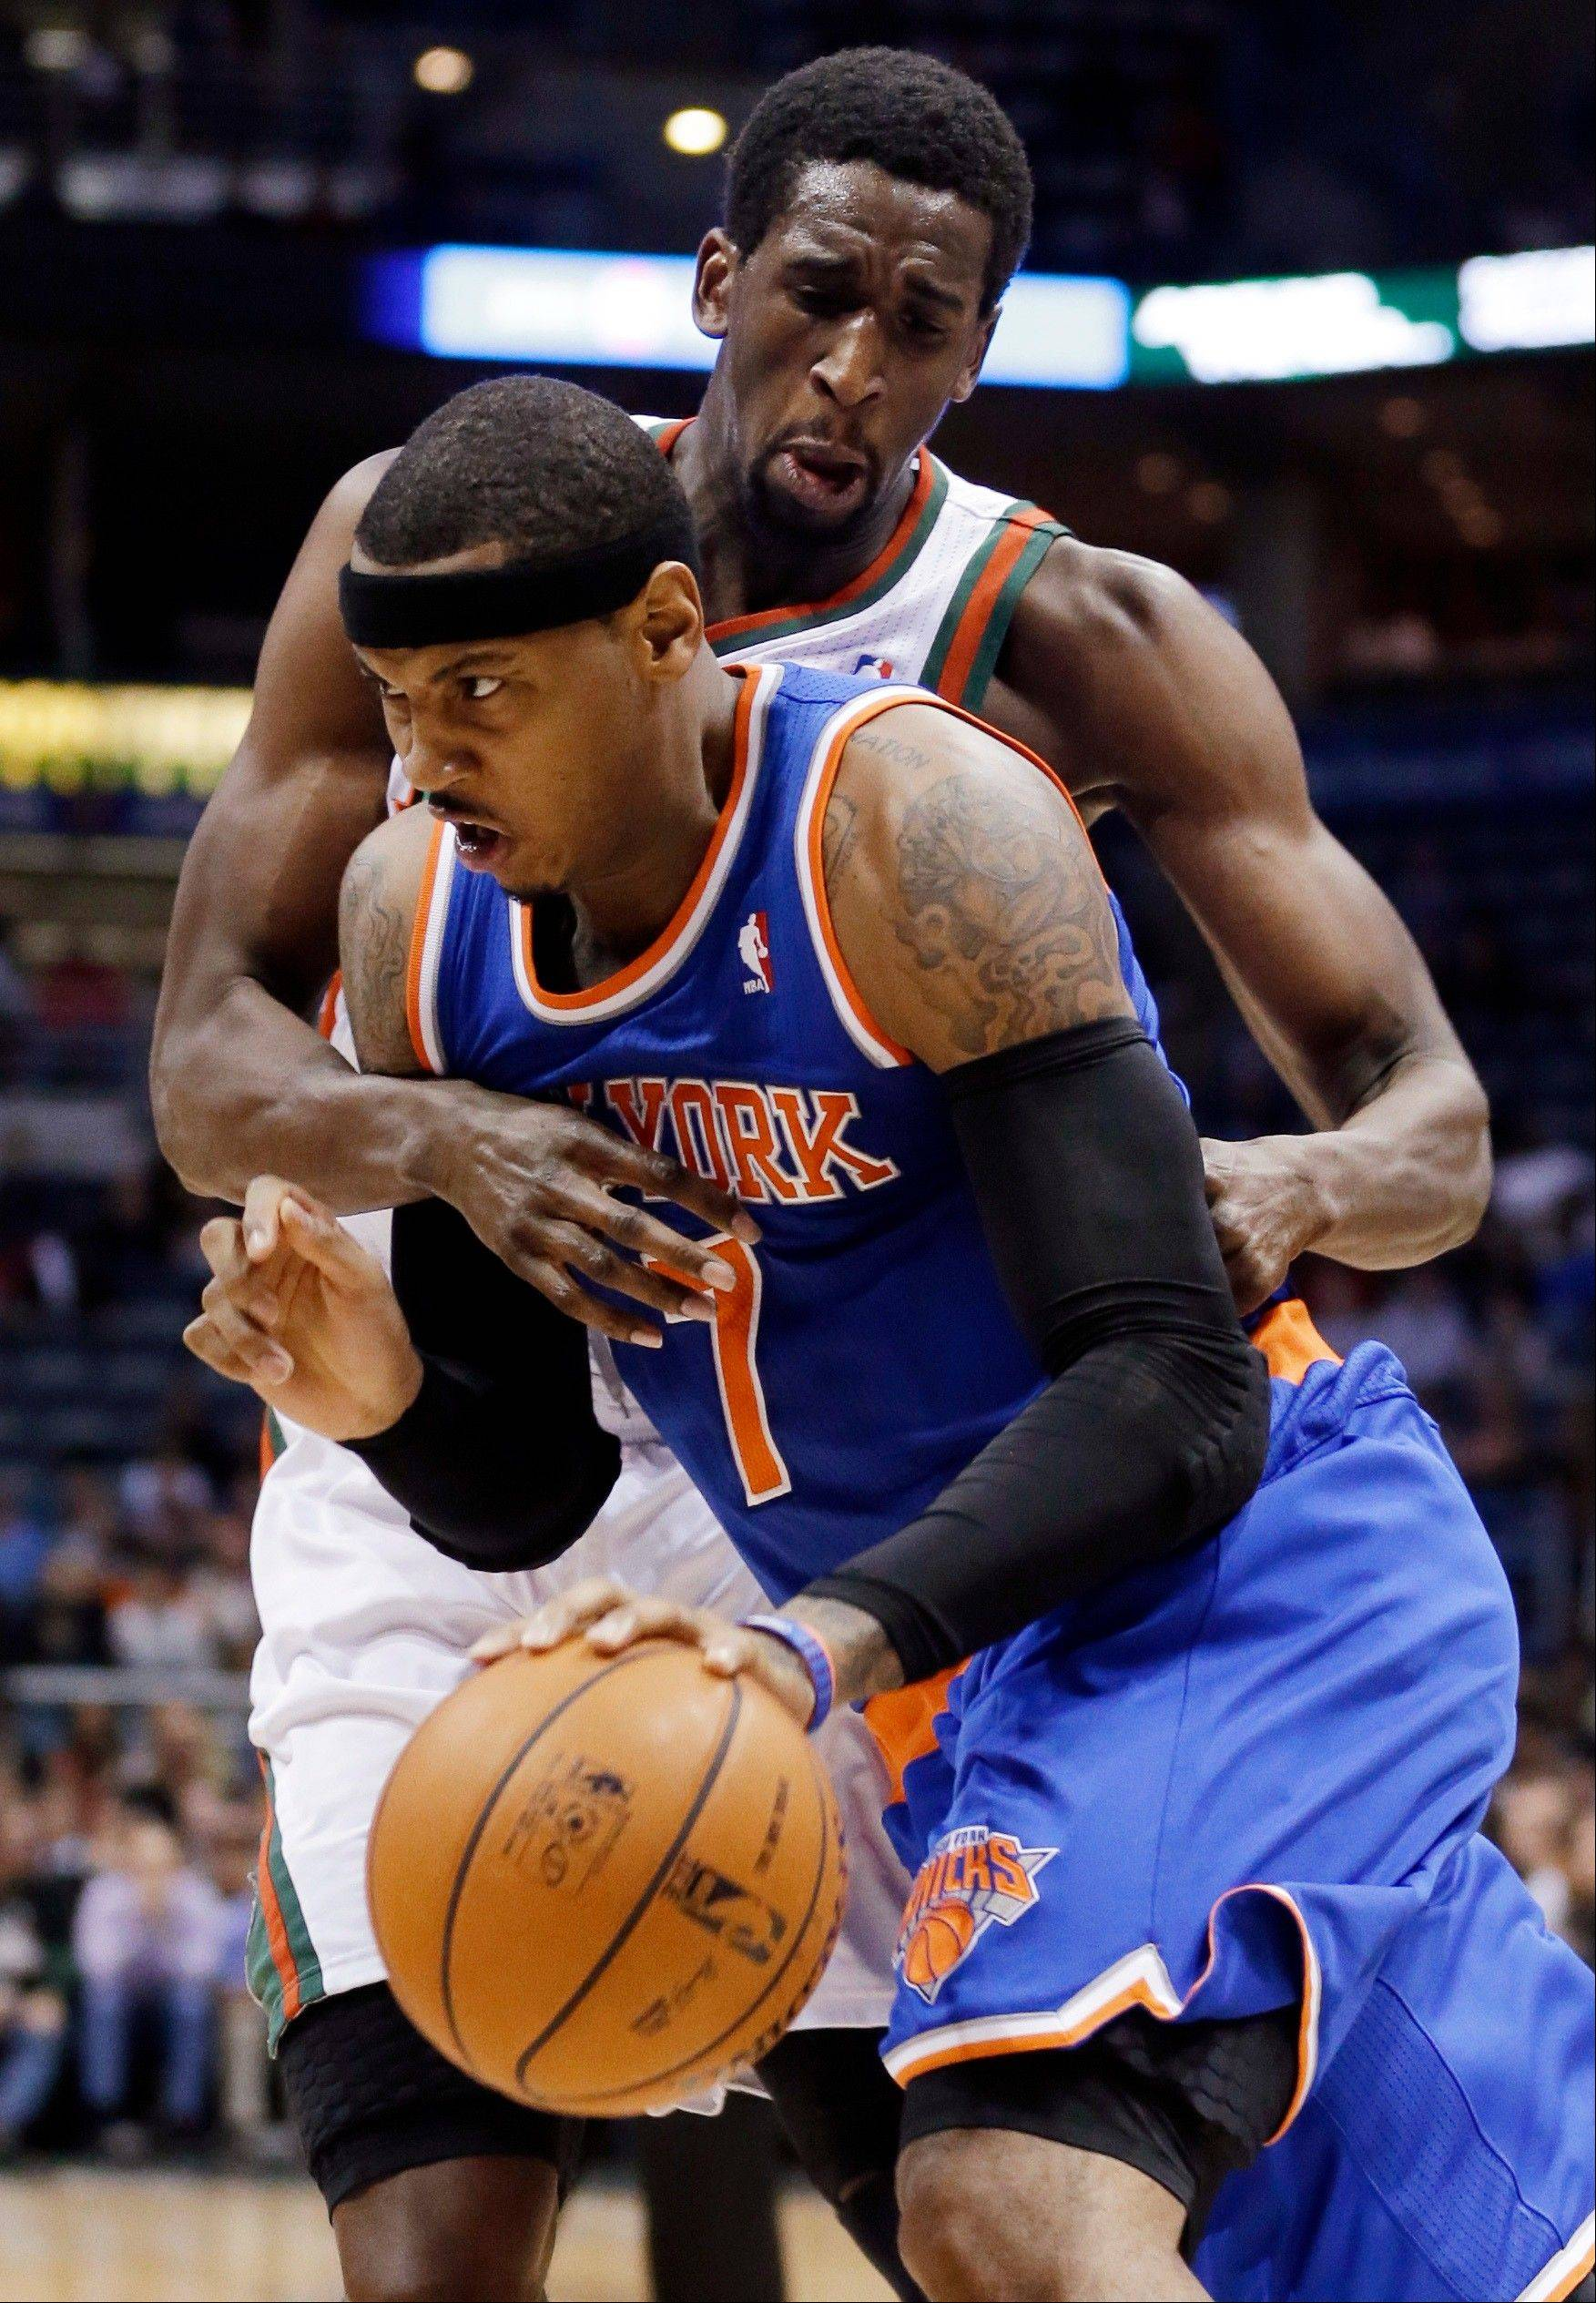 New York Knicks forward Carmelo Anthony is fouled by Milwaukee Bucks' Ekpe Udoh as he drives Wednesday during the first half in Milwaukee.